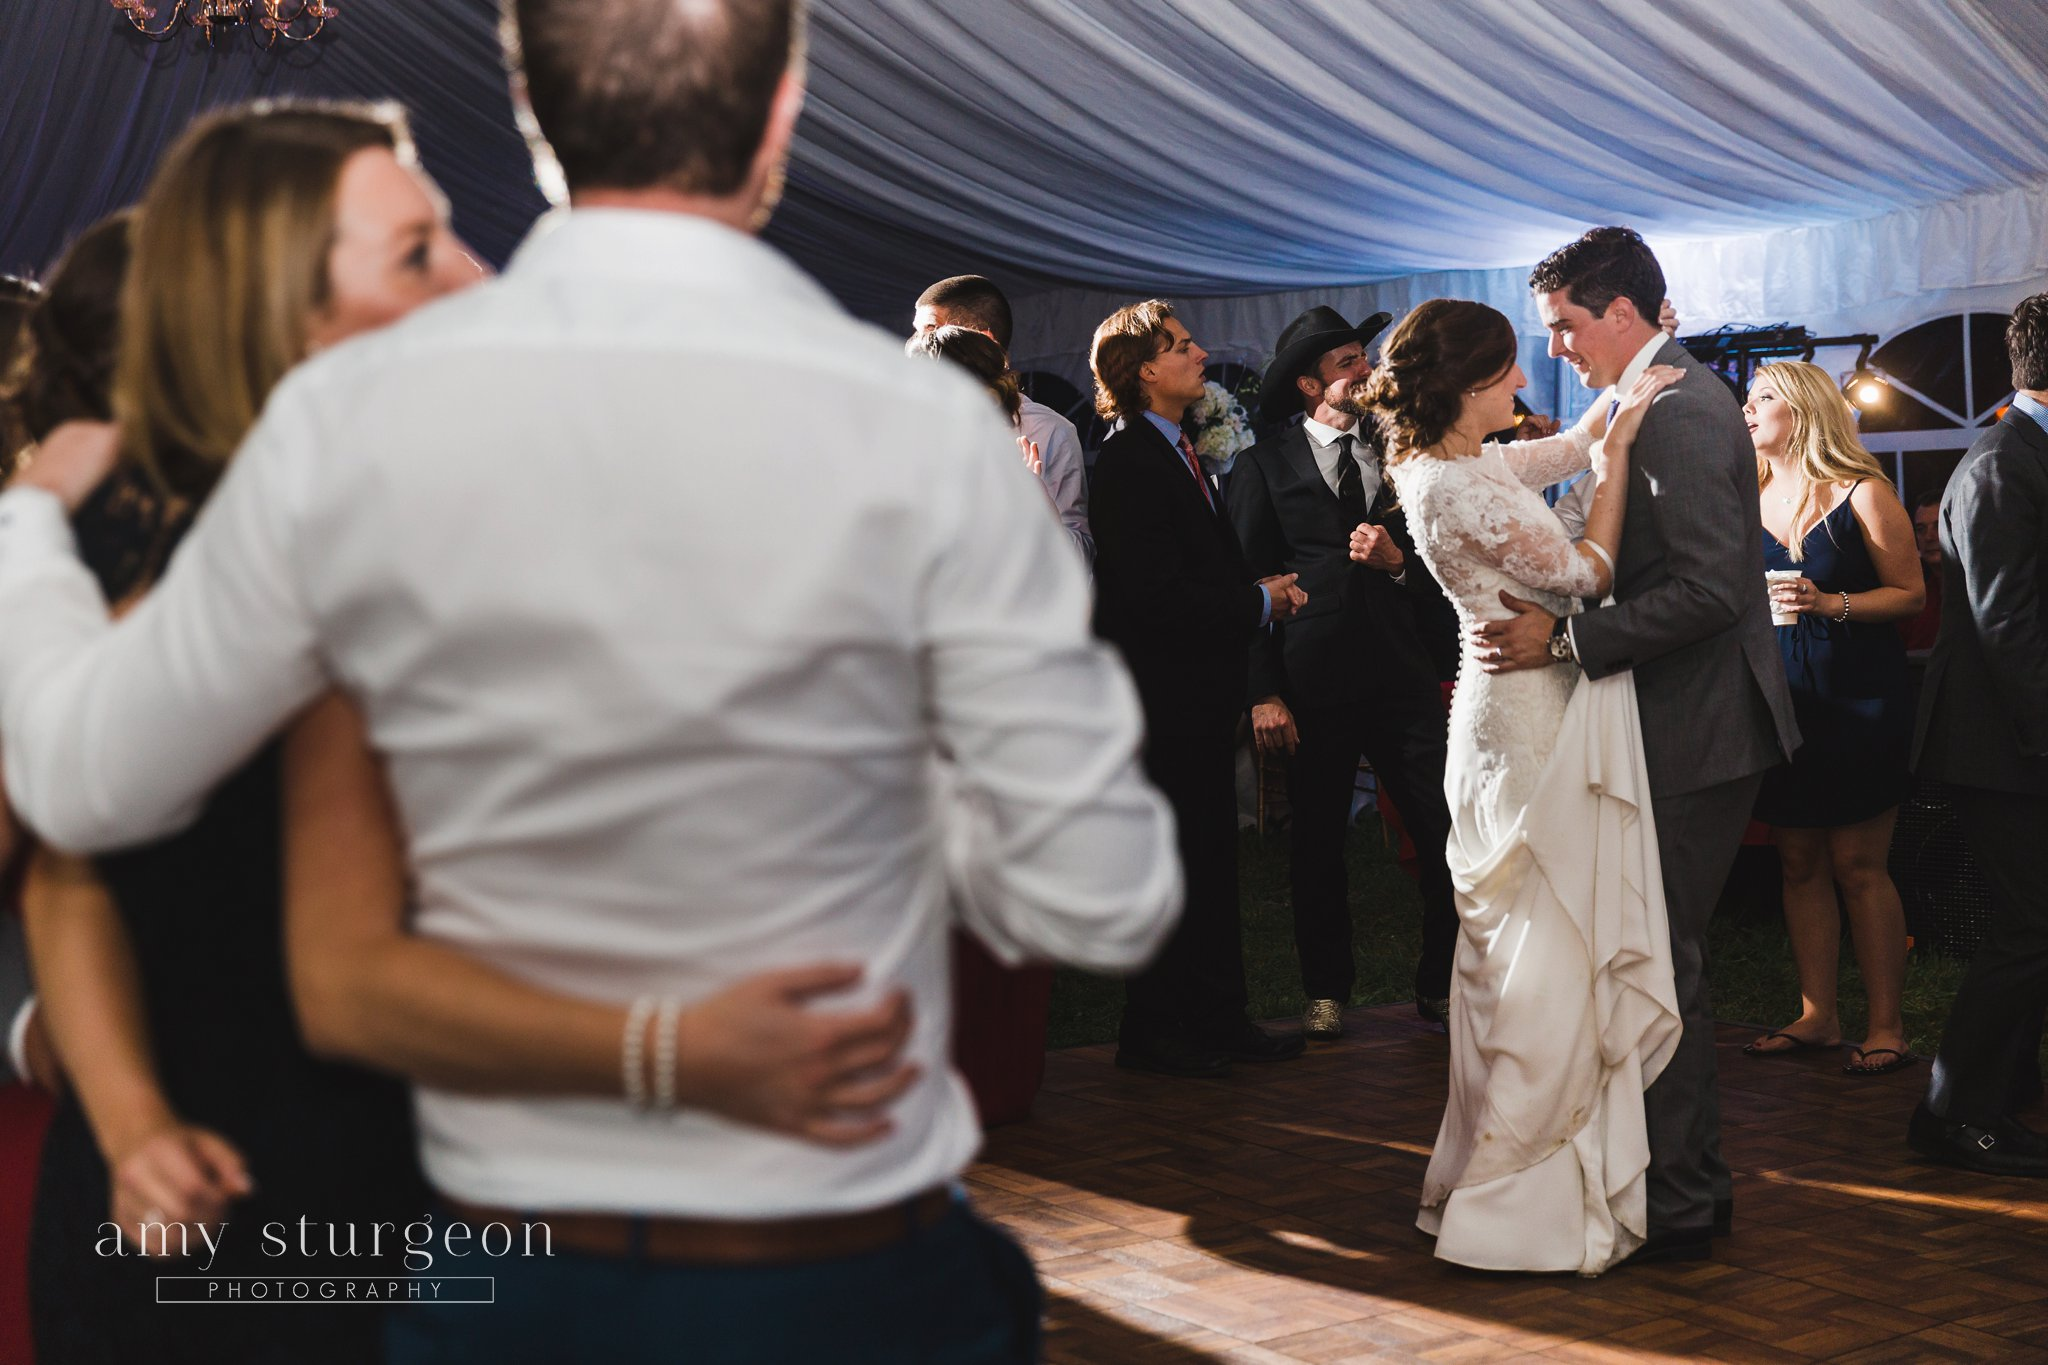 The bride and groom's first dance at an alpaca farm wedding surrounded by wedding guests